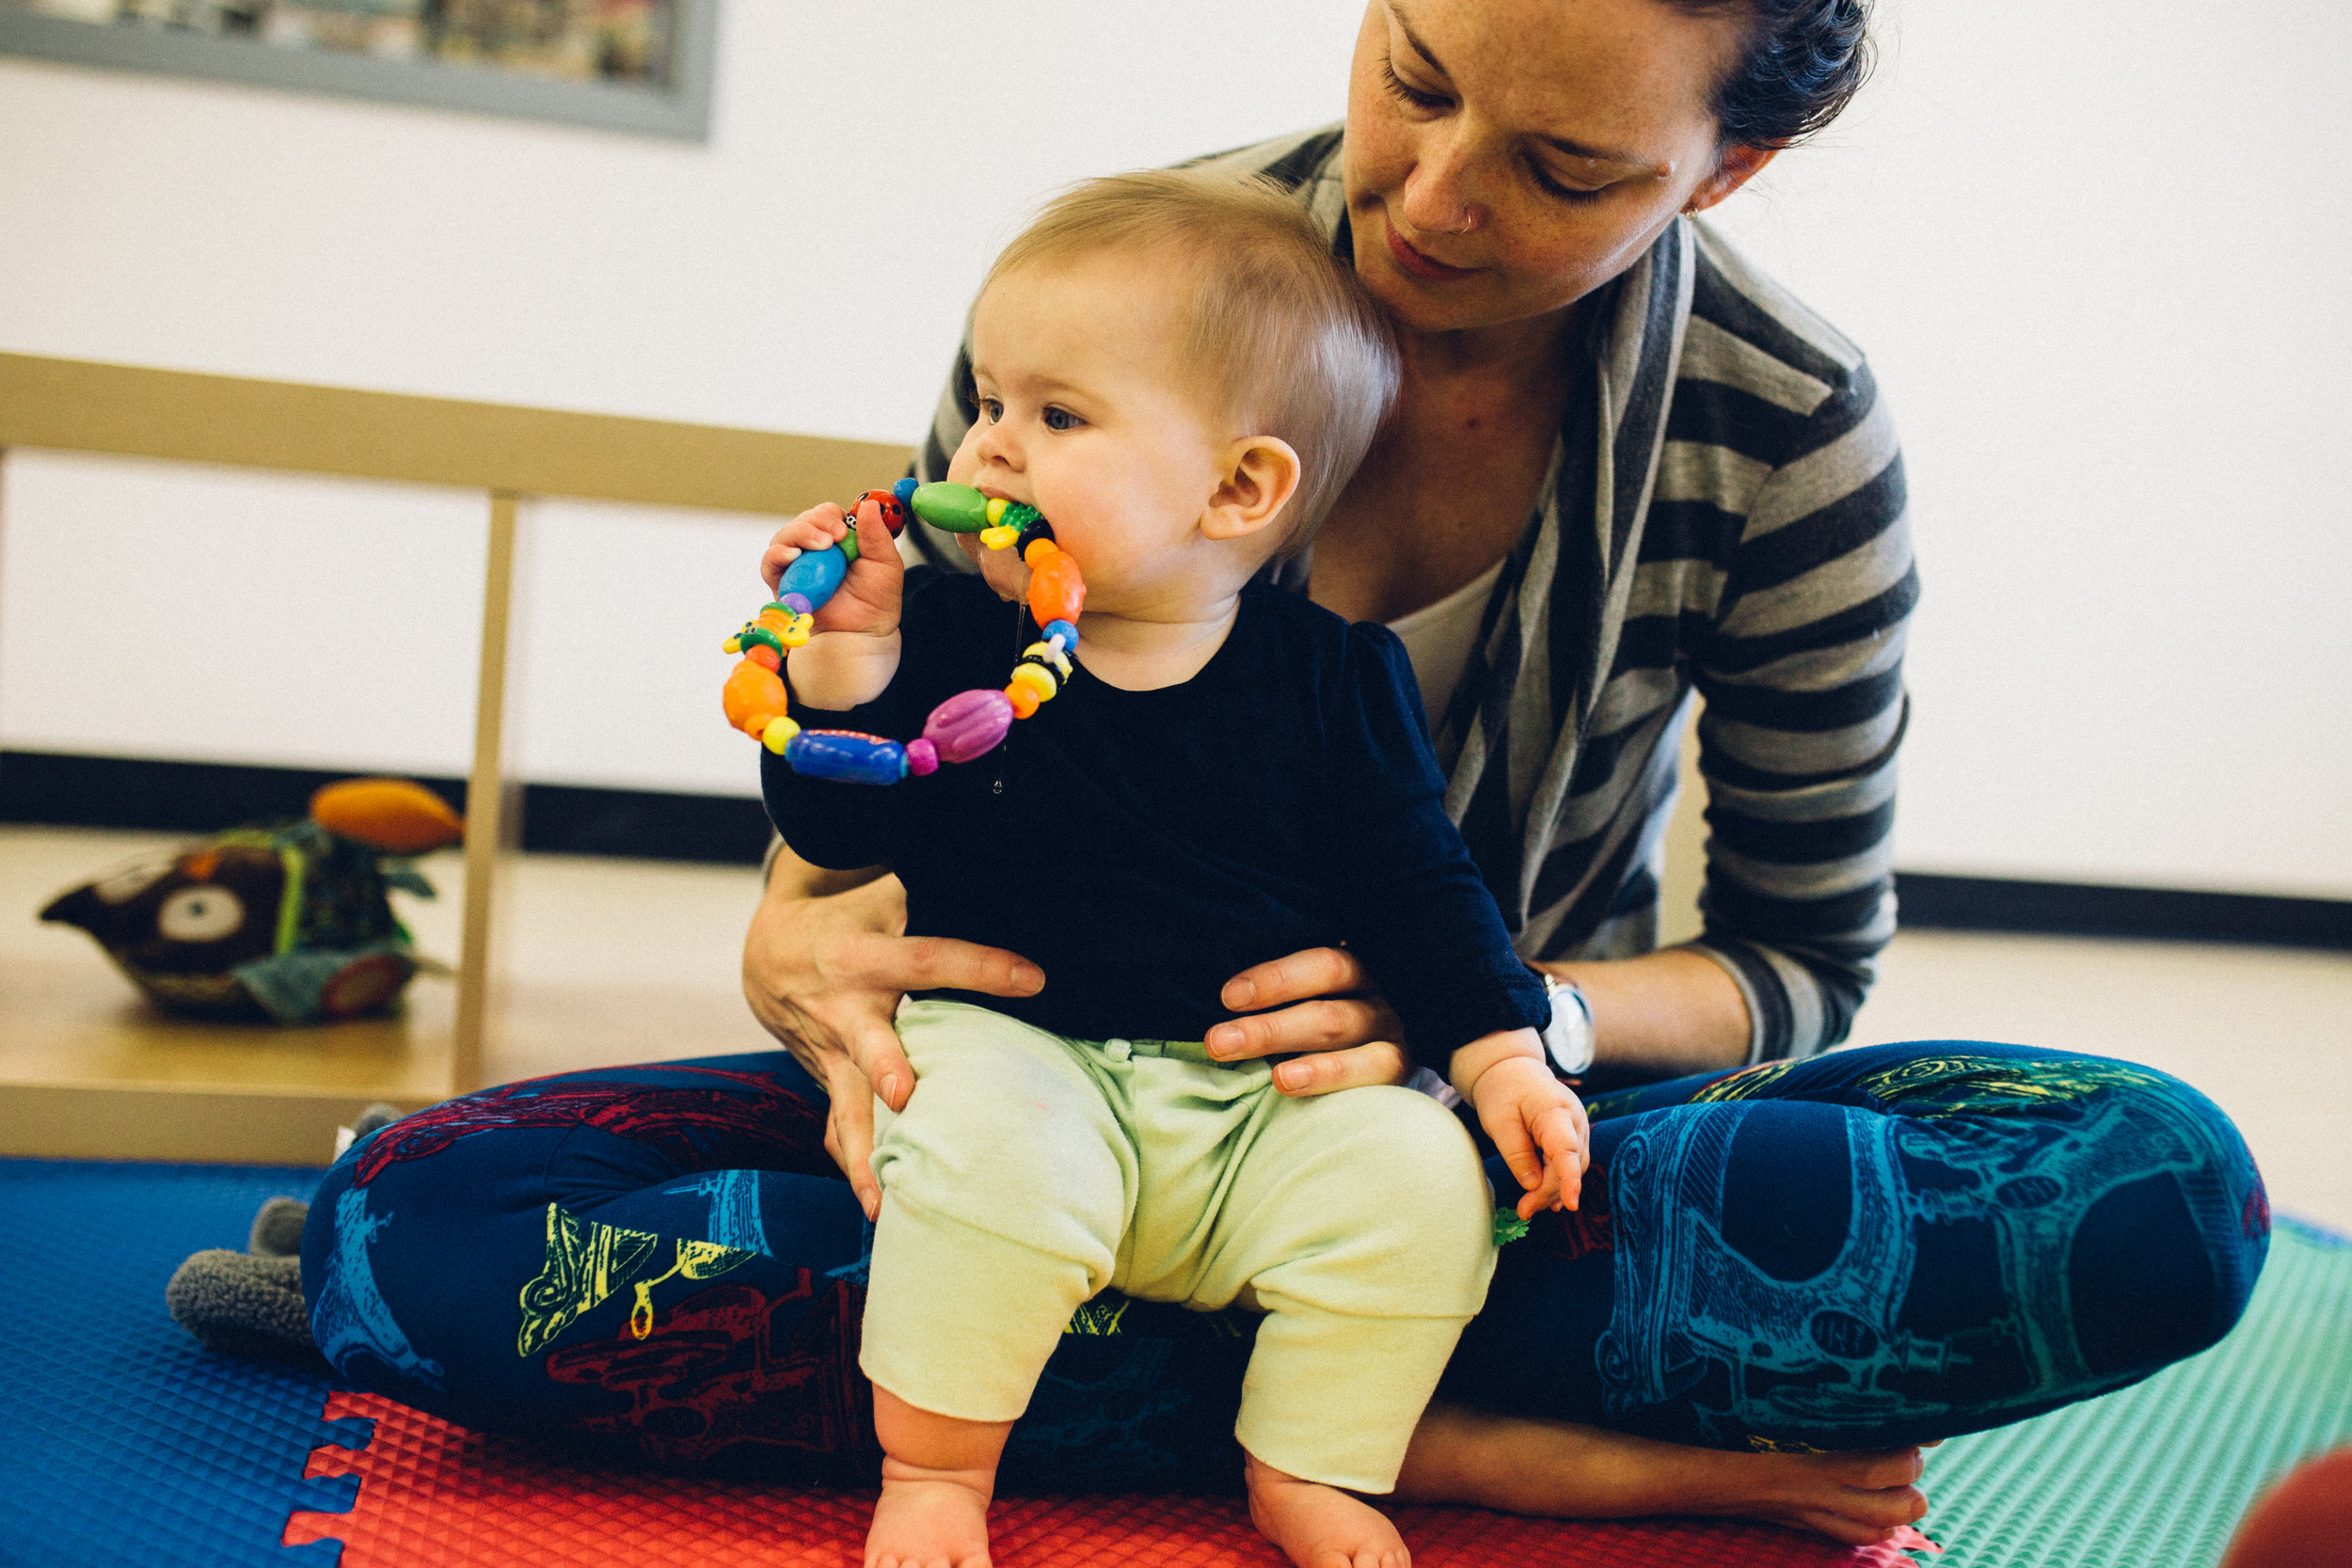 Pediatric physical therapy services to maximize each child's potential